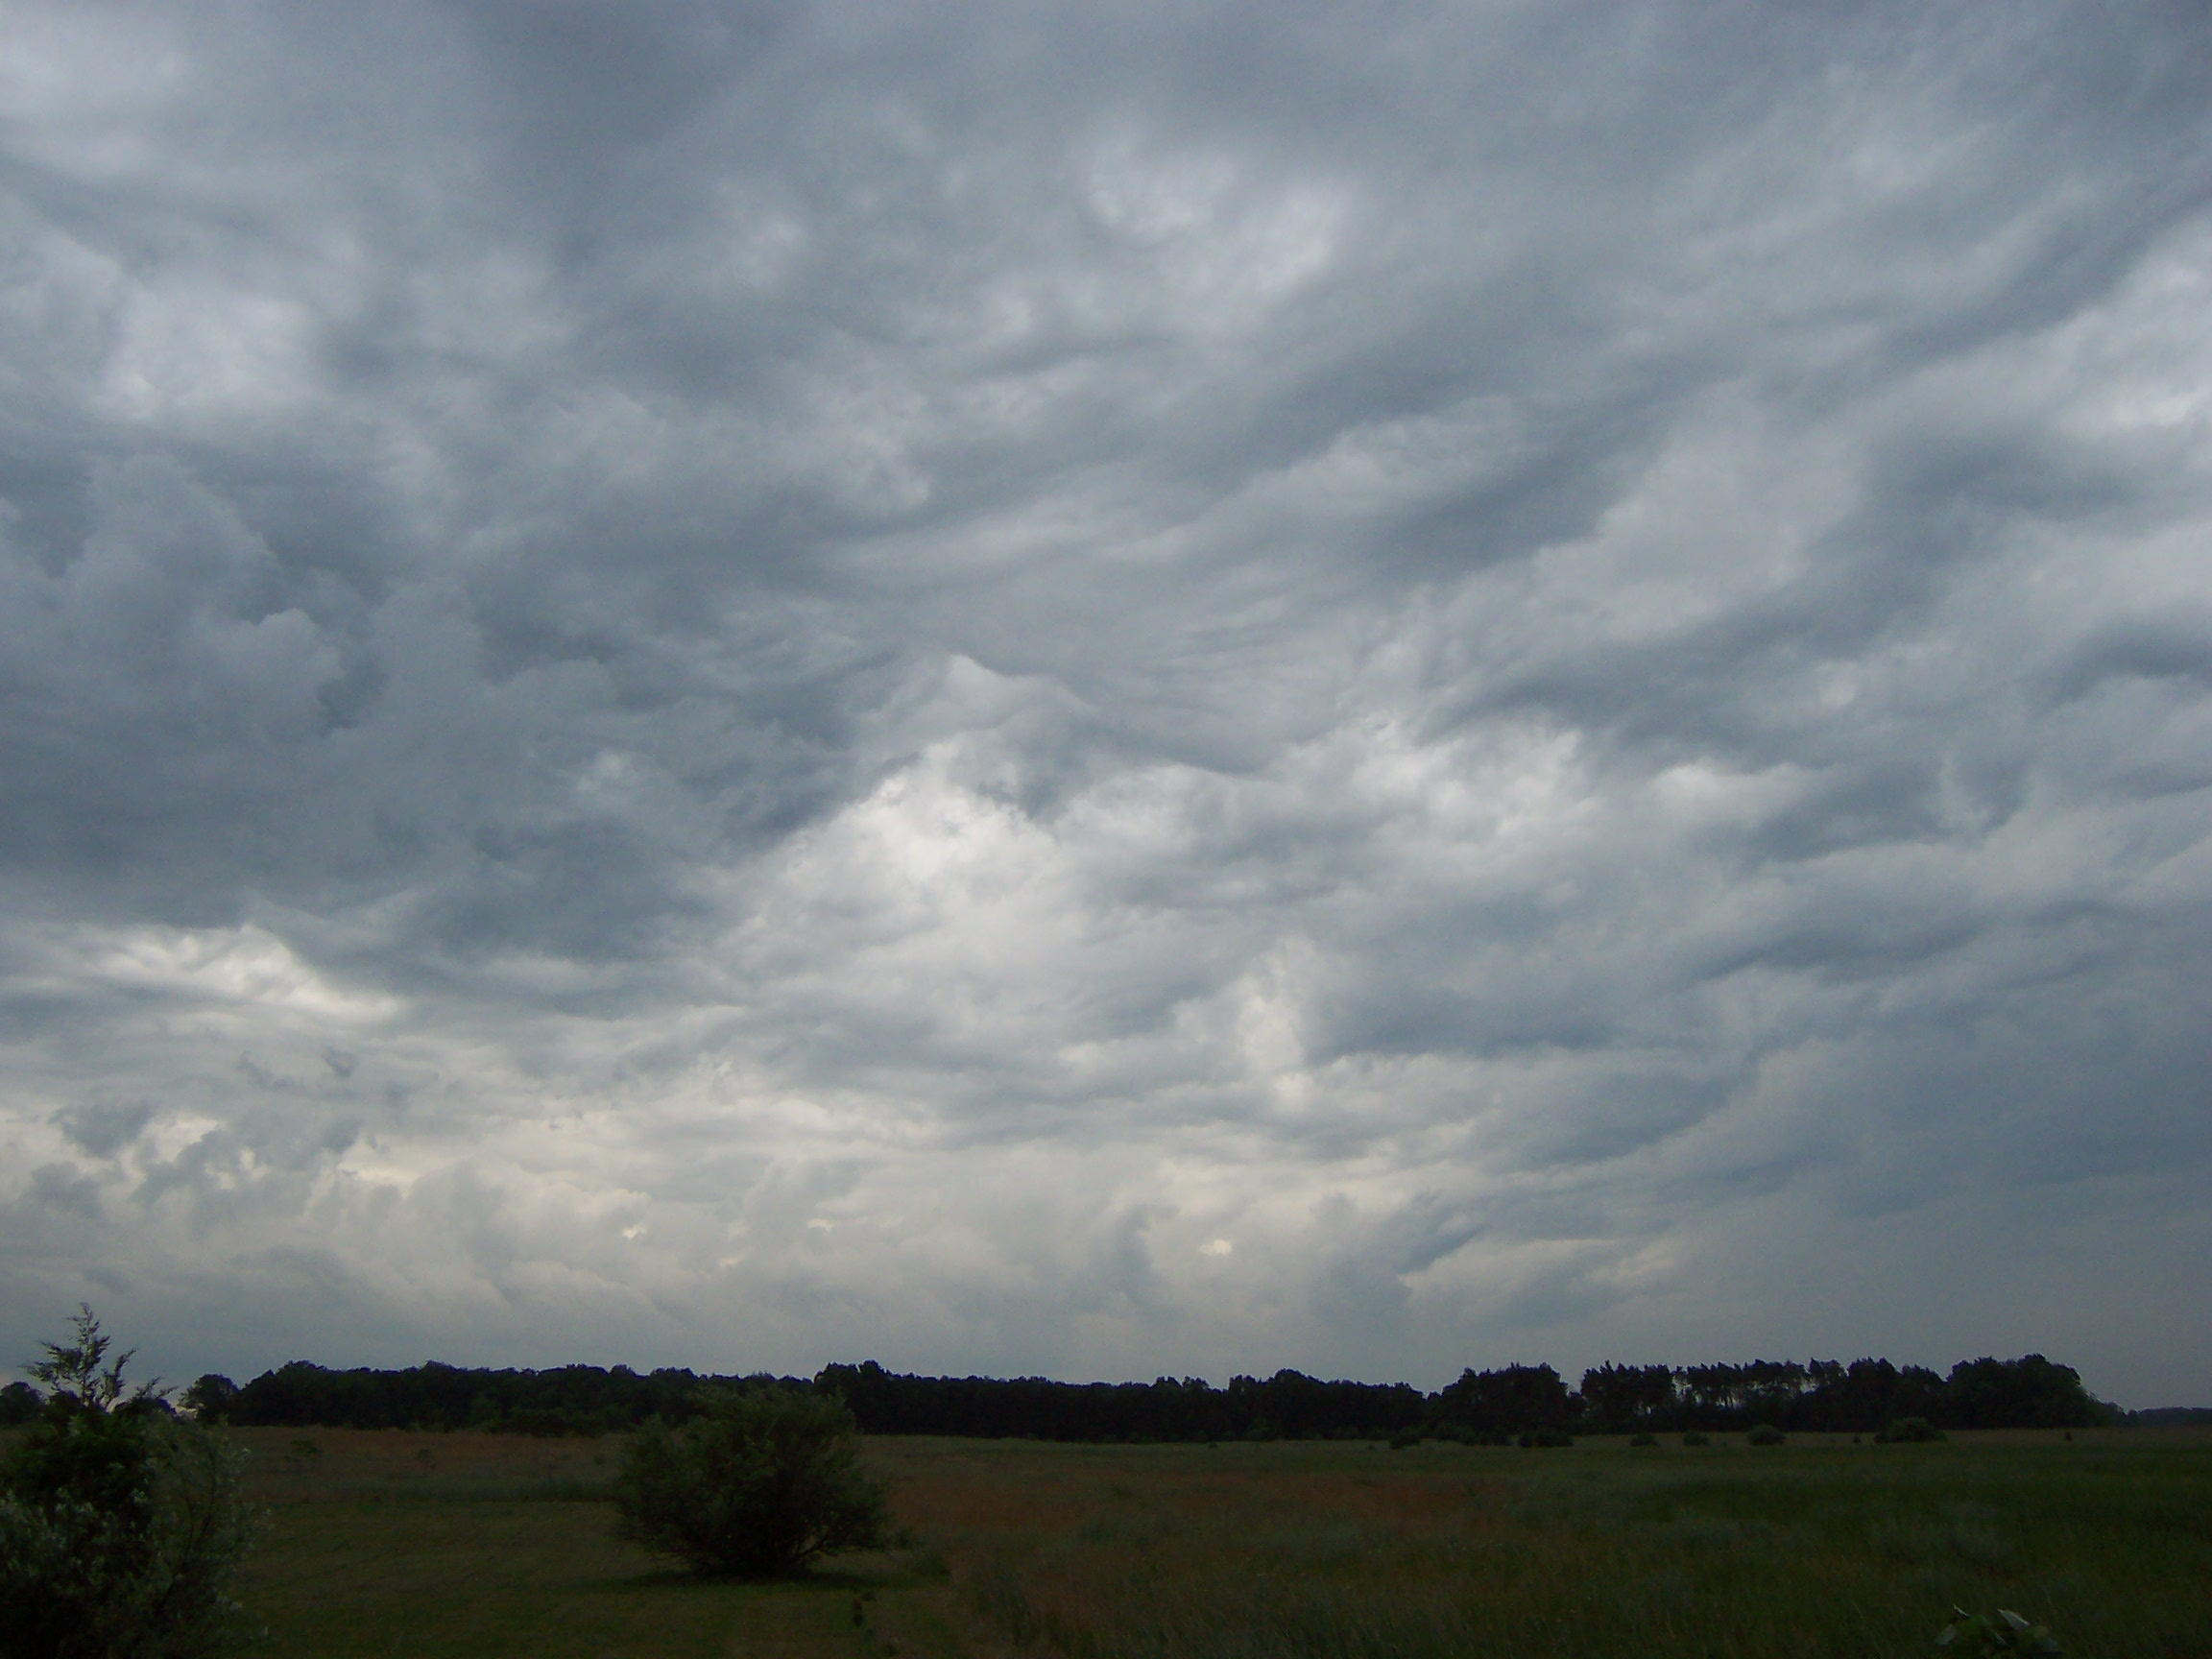 File:Cirrostratus and Stratocumulus clouds in August 2006 ... |Stratocumulus Clouds Description